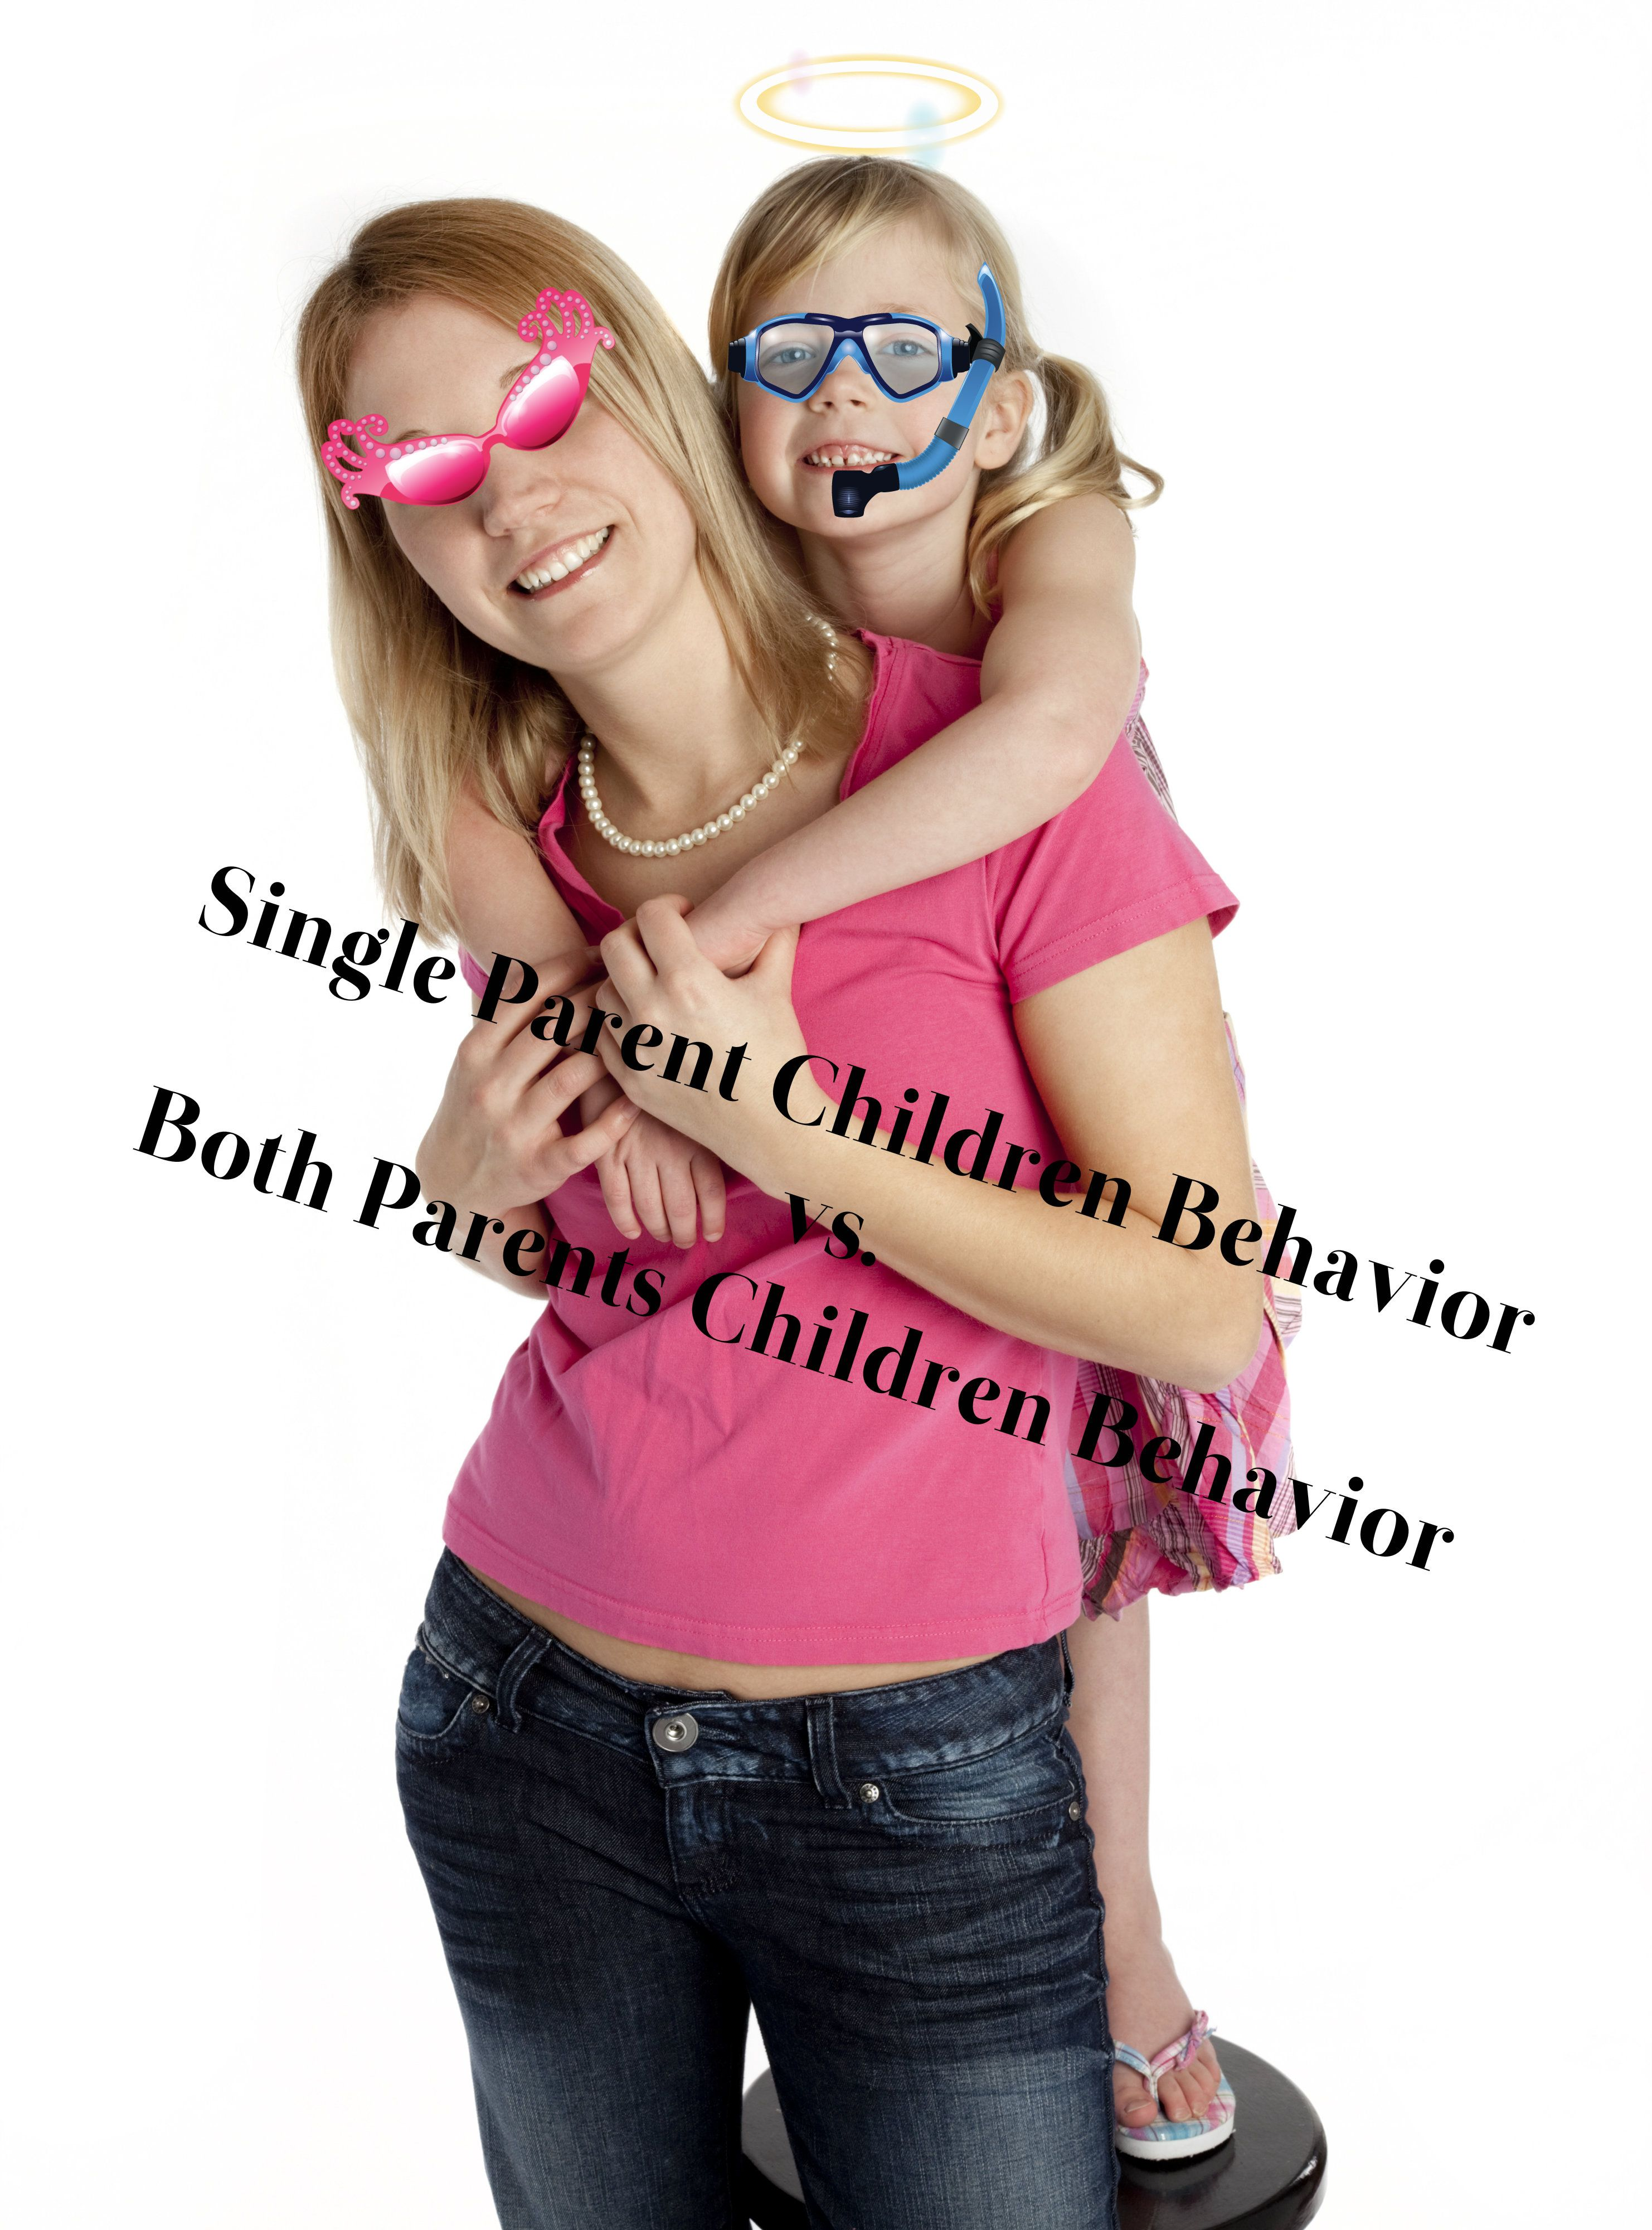 single parent children behavior is different than that of the single parent children behavior is different than that of the children both parents